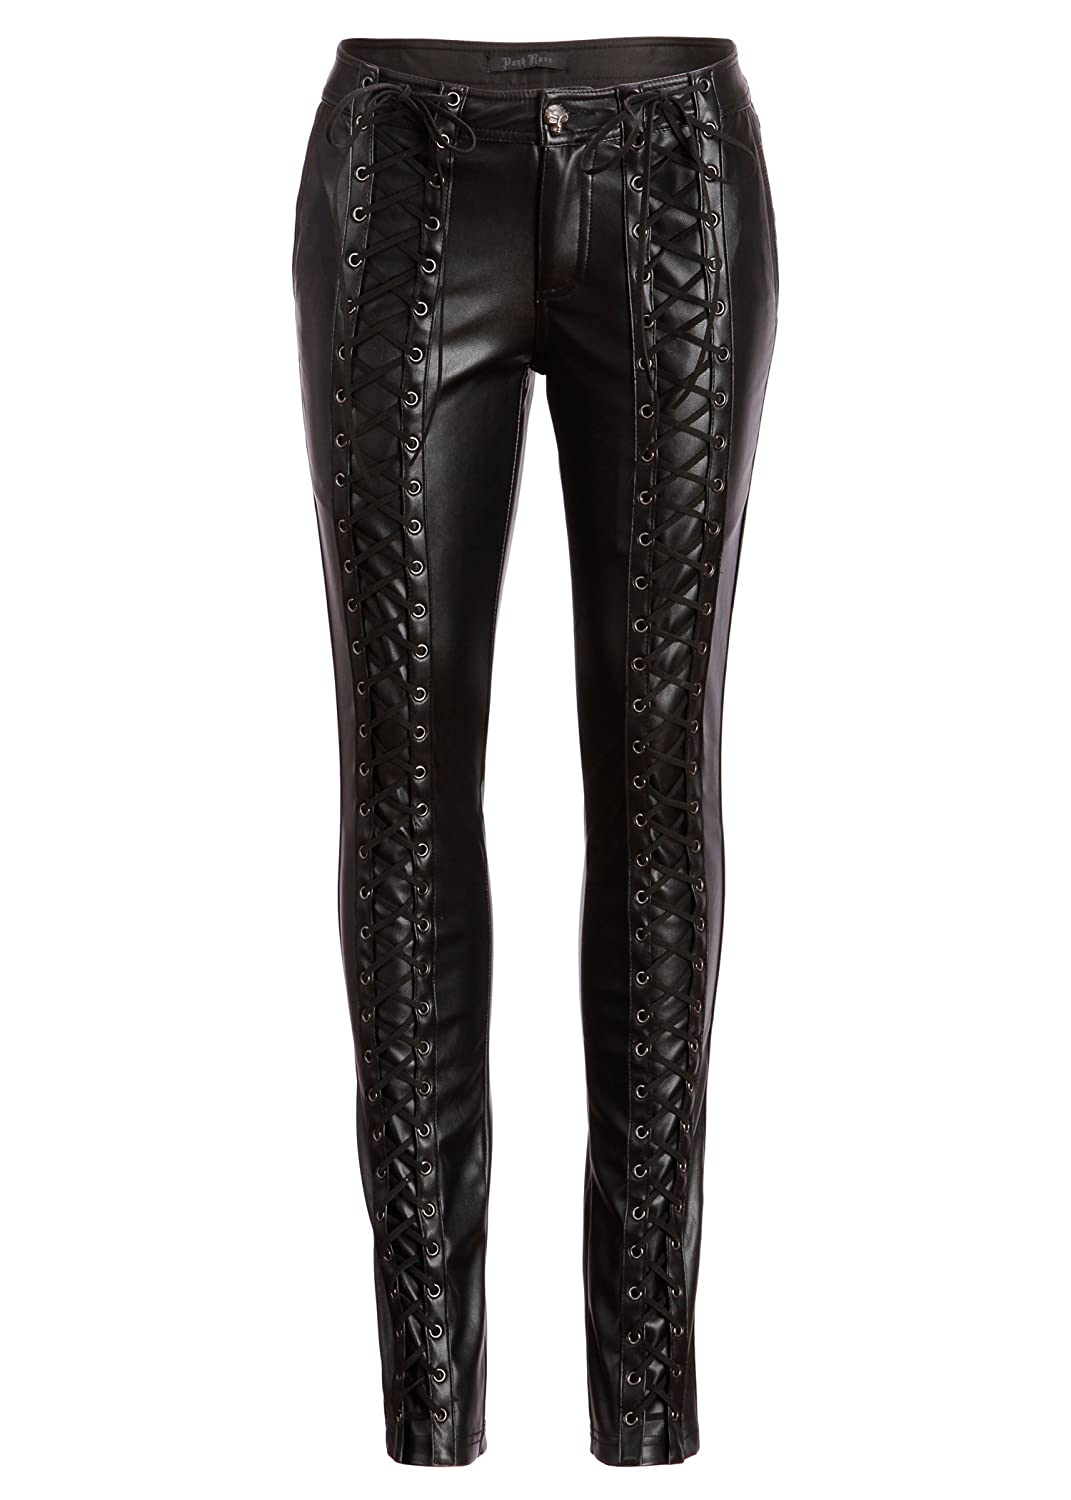 Womens Punk Rave Black Vegan Leather Laced Up Skinny Fit Pants